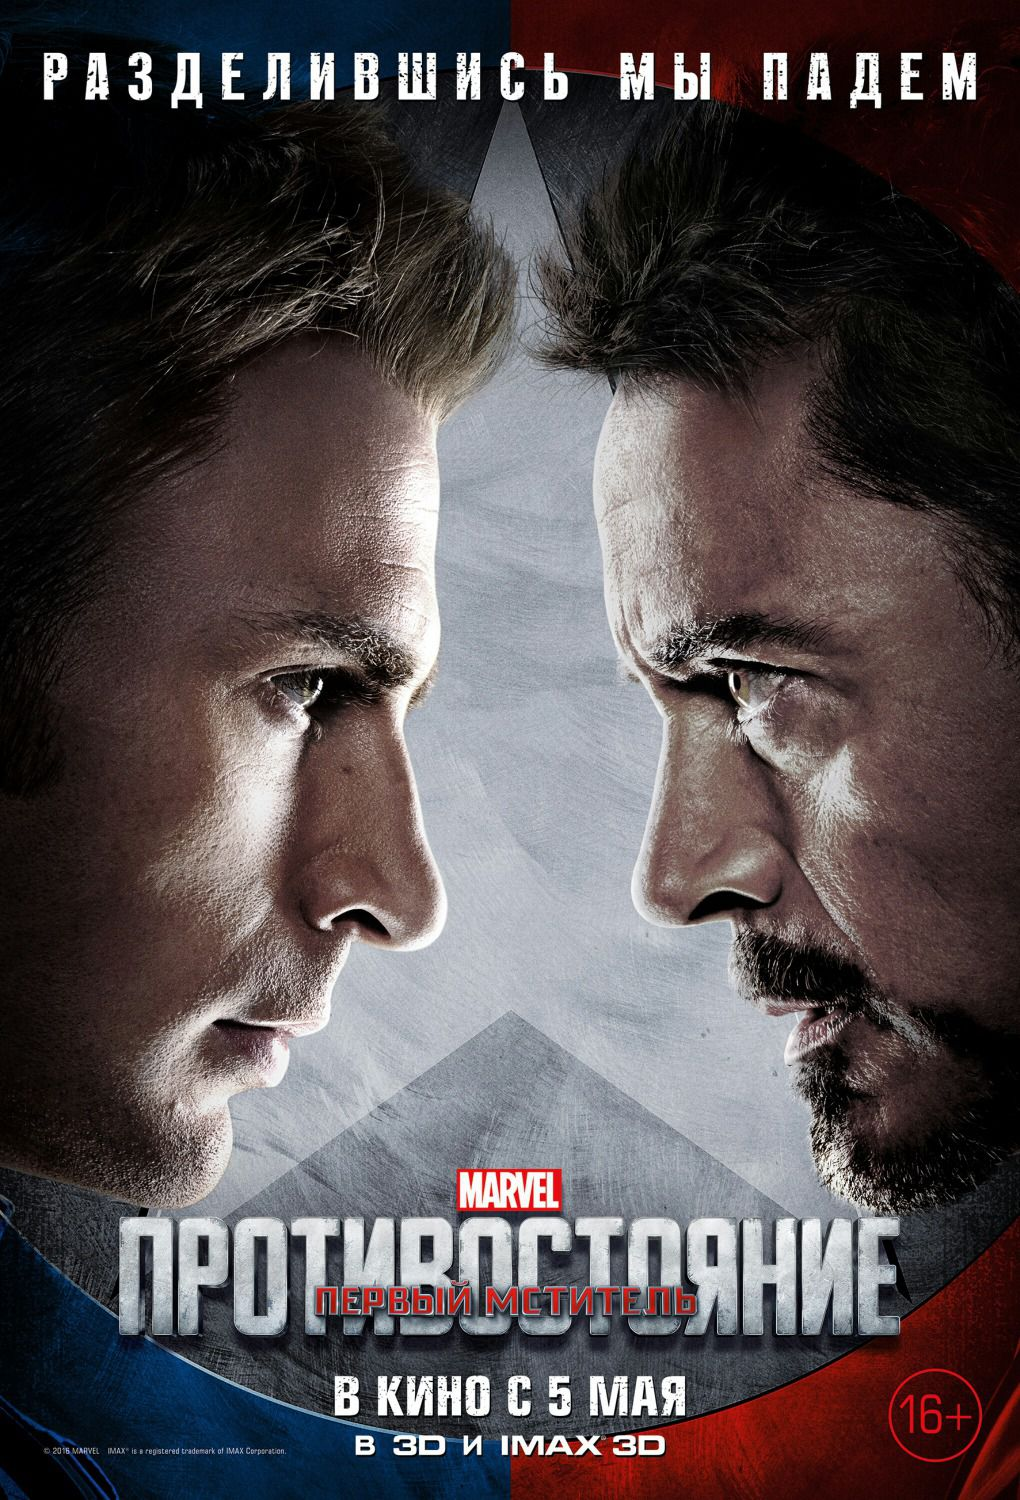 Captain America 3 - Civil War - Capitan America - Captain America vs Ironman